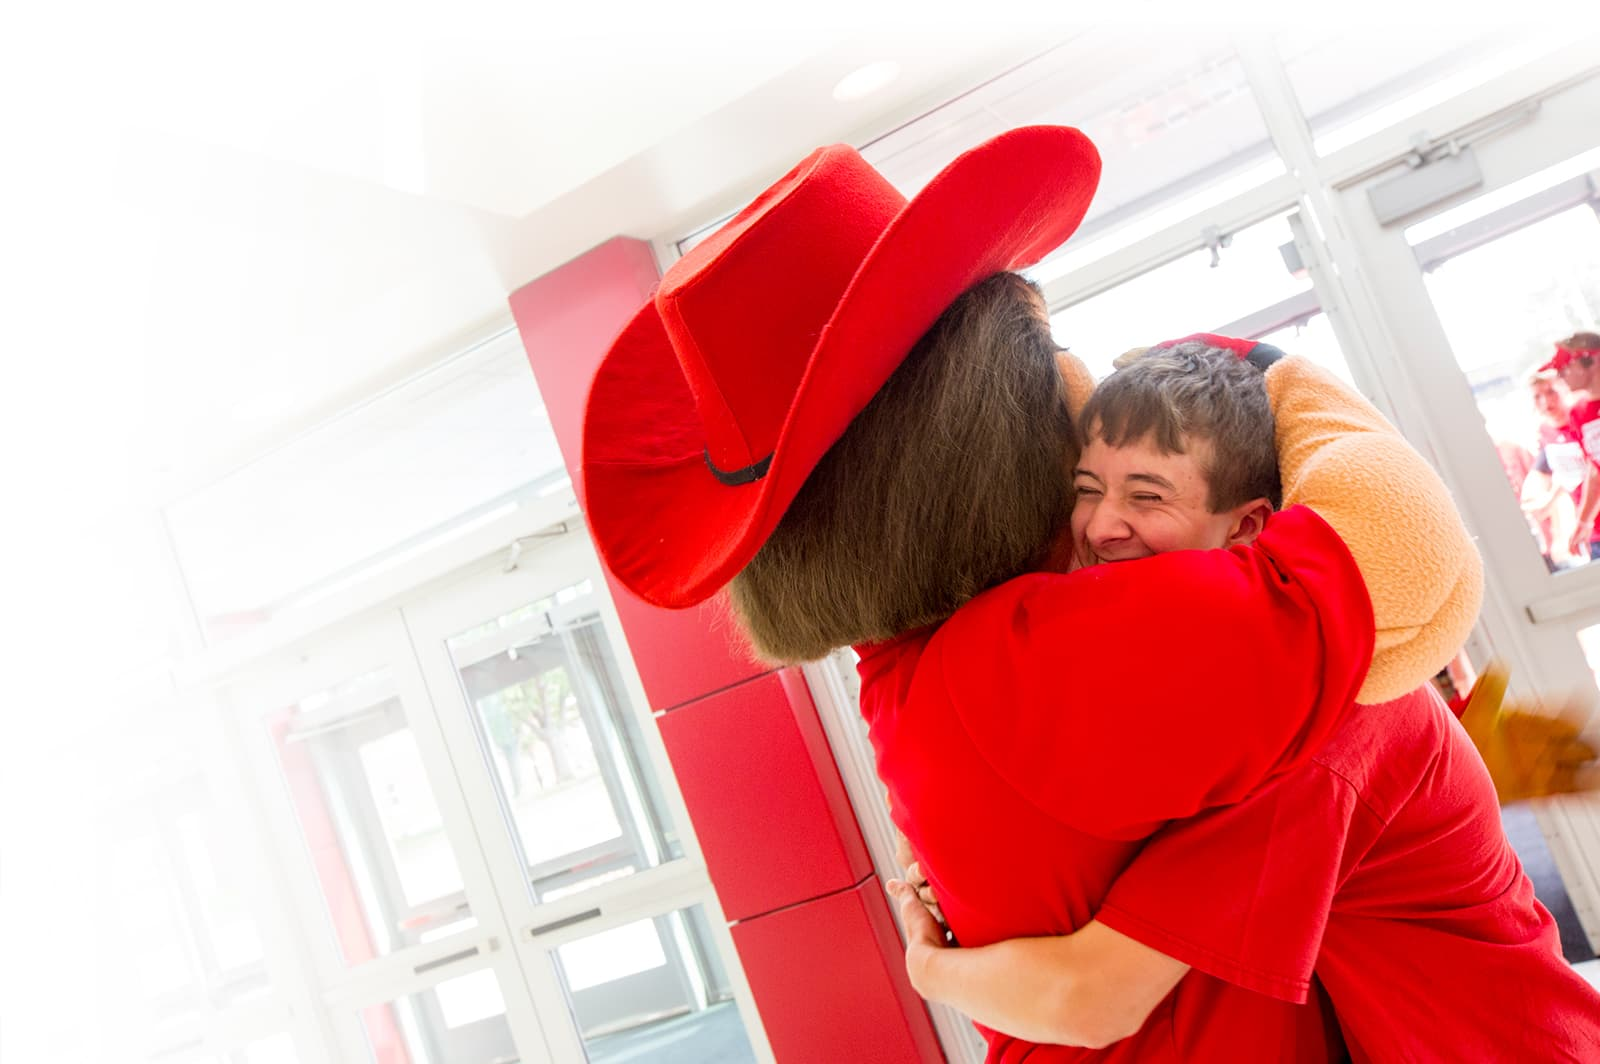 University of Nebraska–Lincoln mascot, Herbie Husker, gives a fan a hug